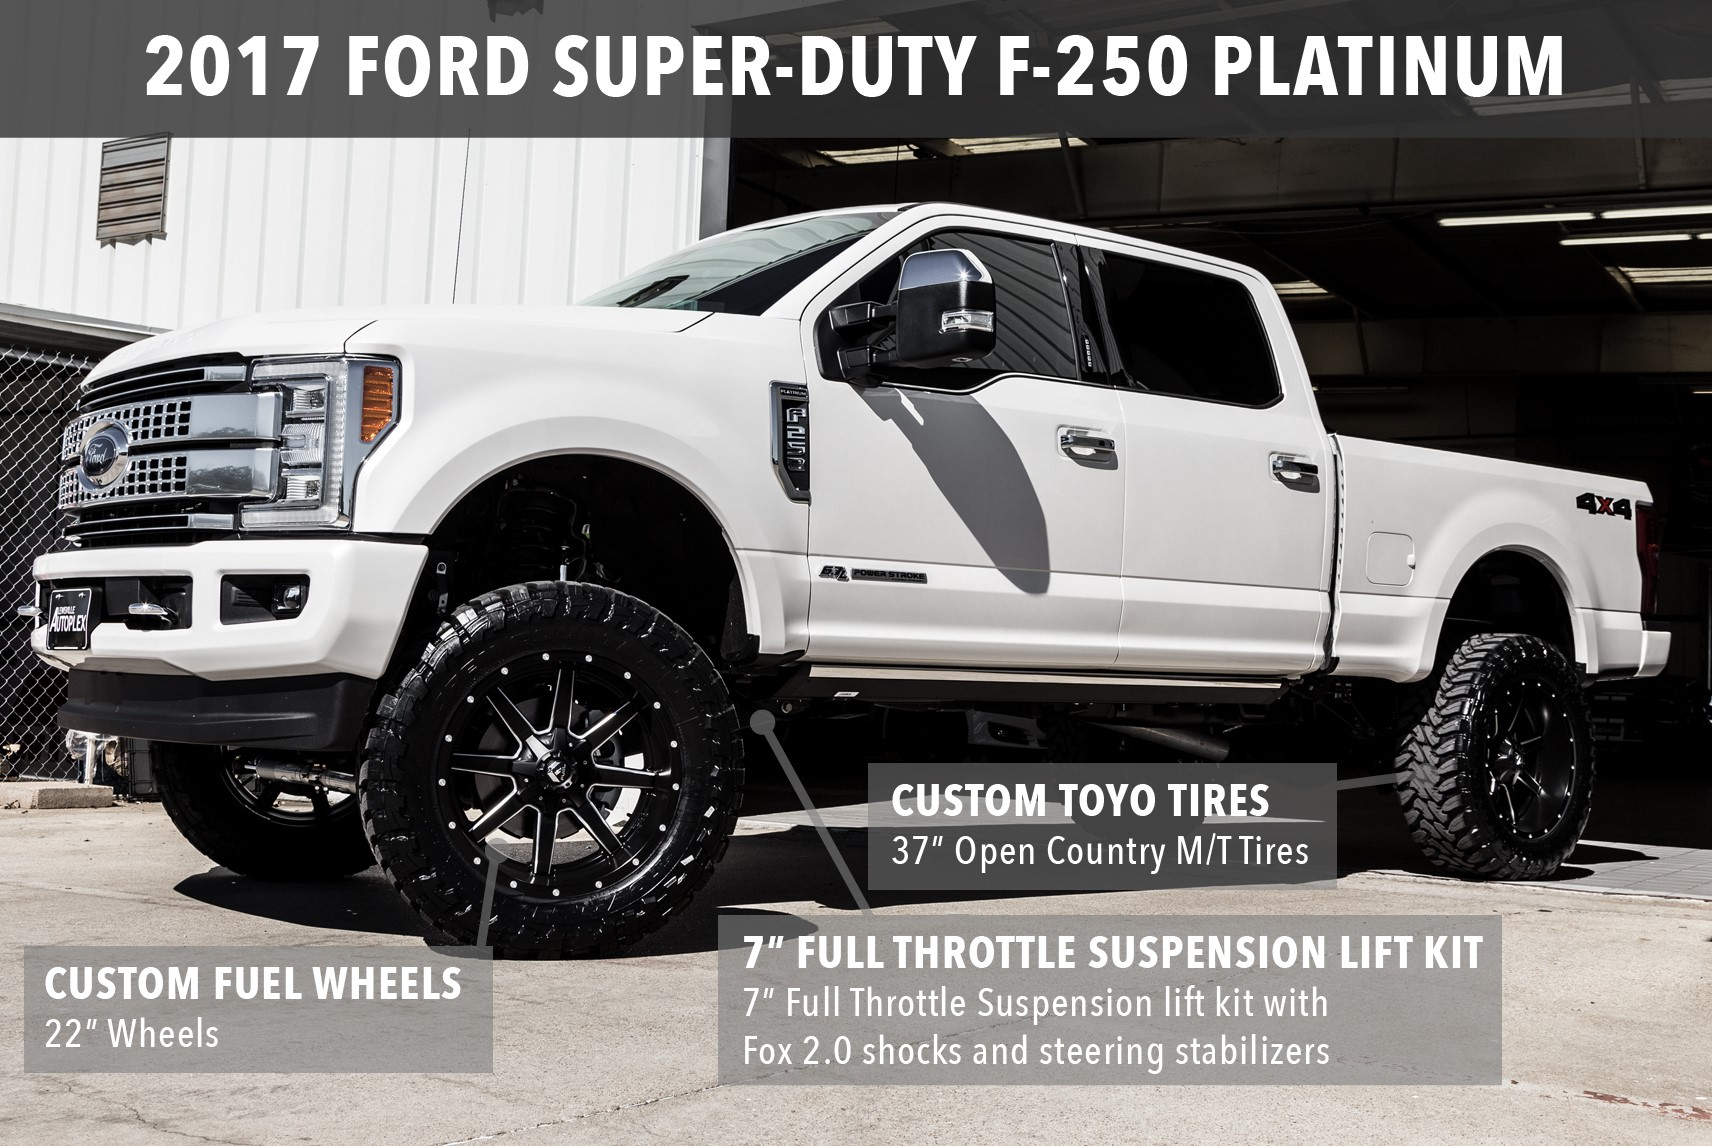 Ready To Check Out The All New 2017 Ford F 250 Super Duty Selection At Our Dealership Please Stop In And Visit Us Soon We Offer A Wide Array Of These